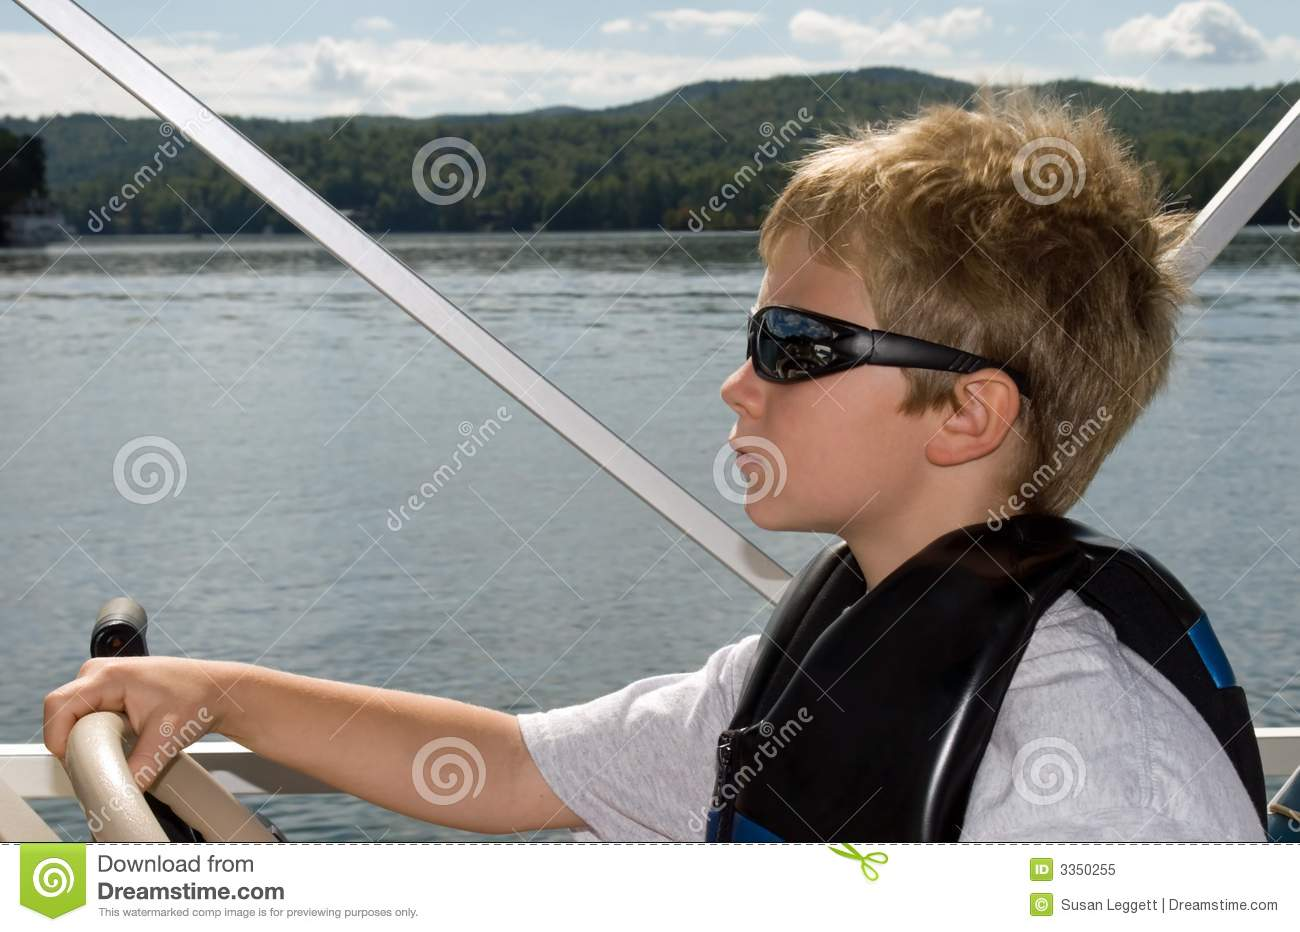 Young Boy and Boat